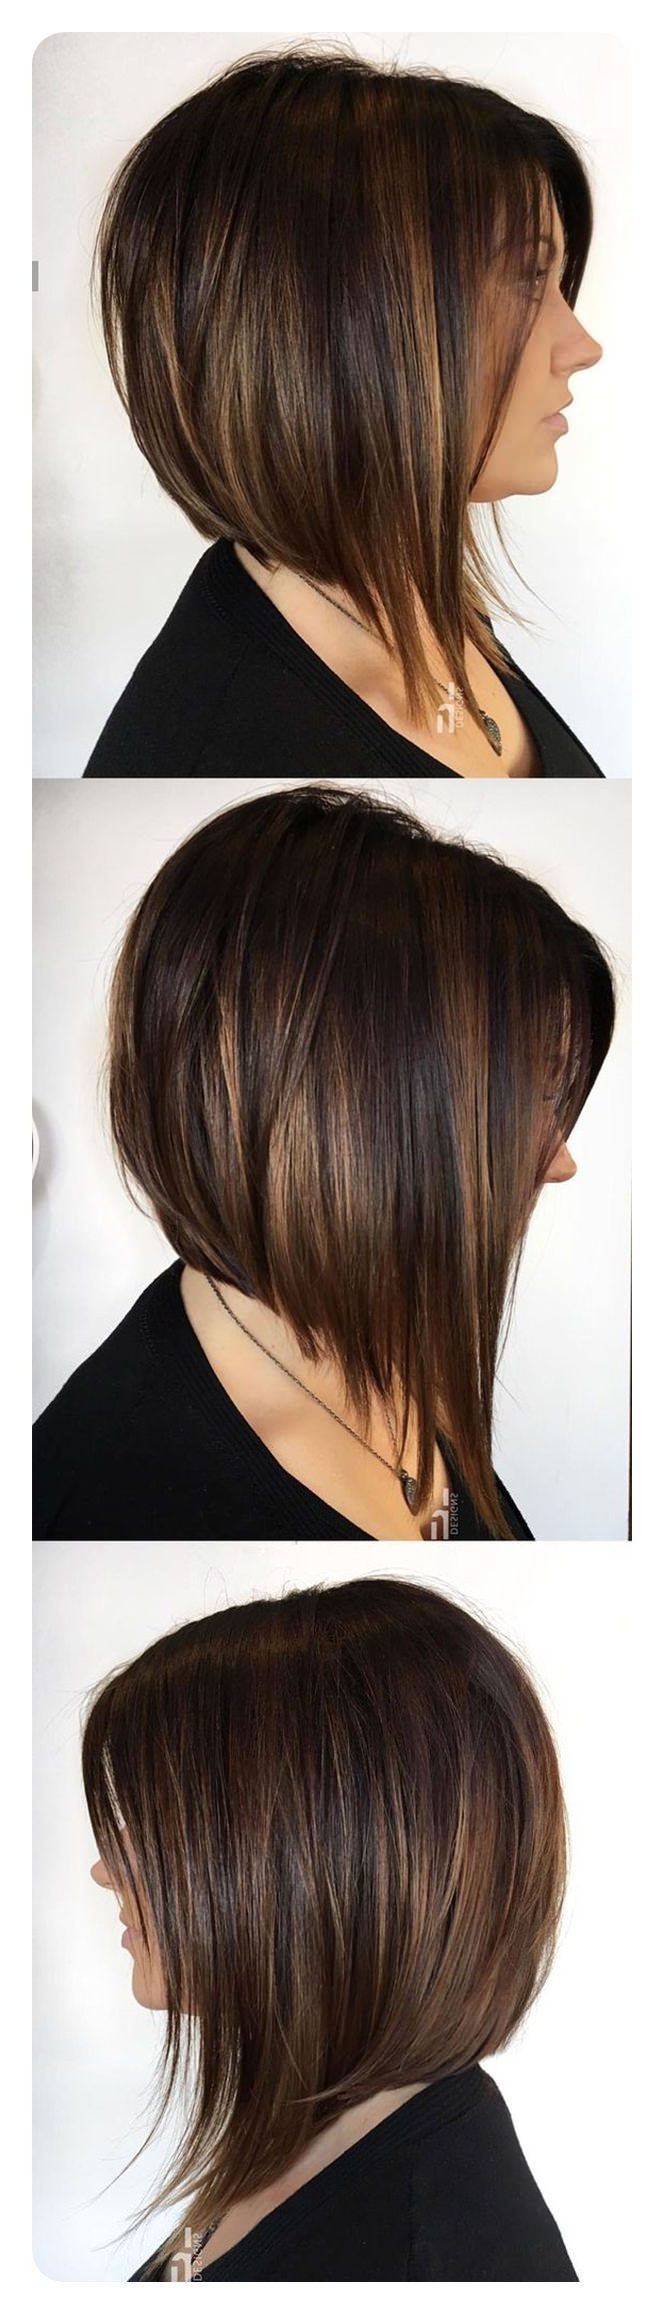 The Bob Cut Craze: 88 Ways To Vamp Your Inverted Bob Intended For Short Sliced Metallic Blonde Bob Hairstyles (View 12 of 20)